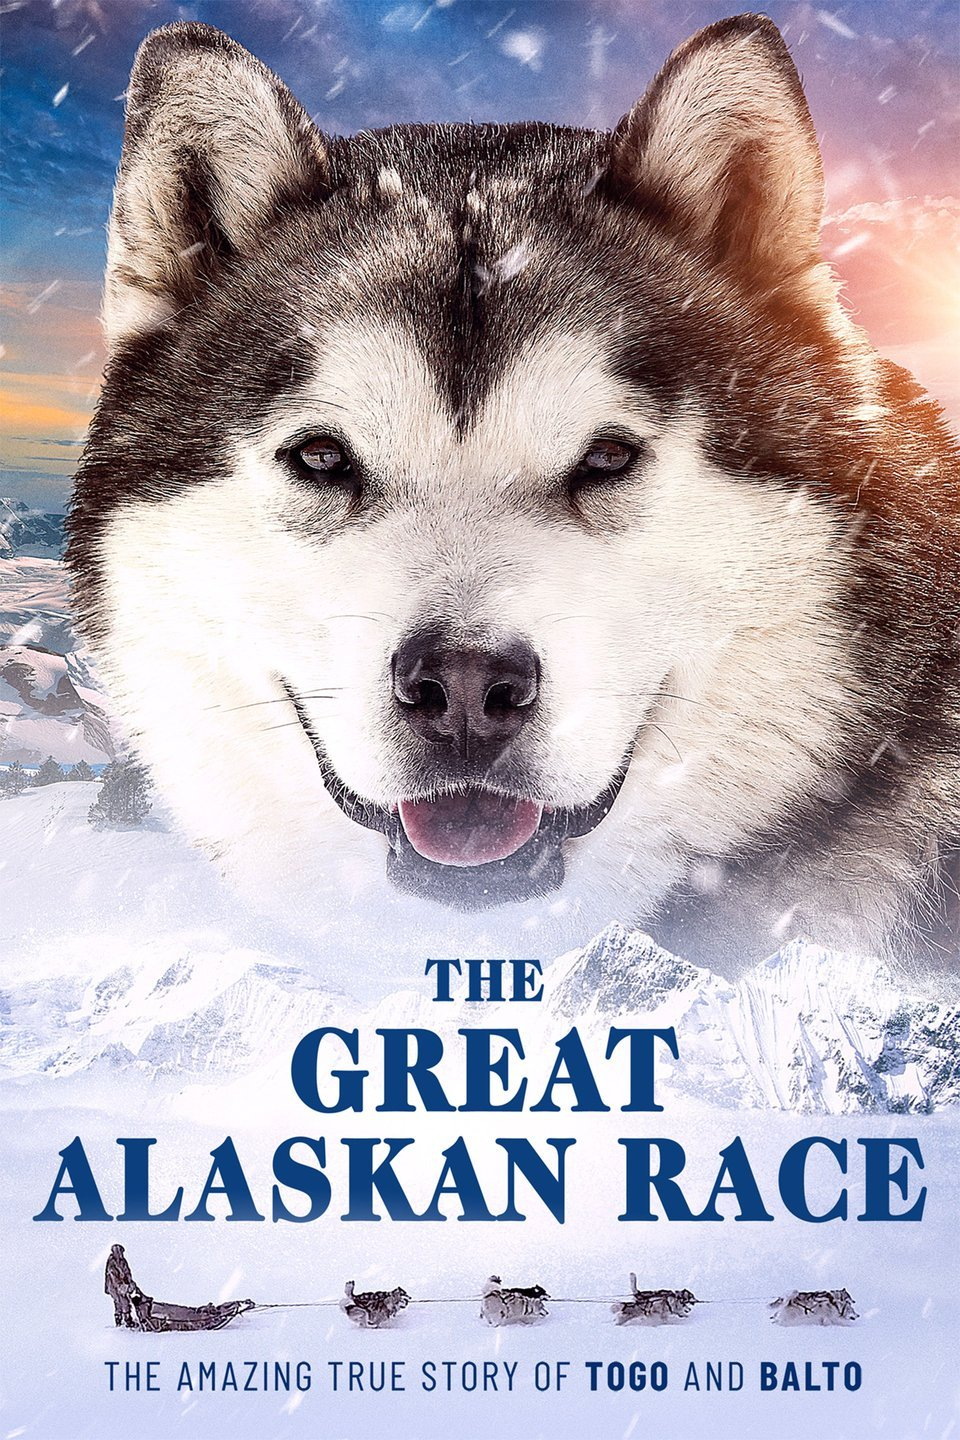 Image result for great alaskan race movie